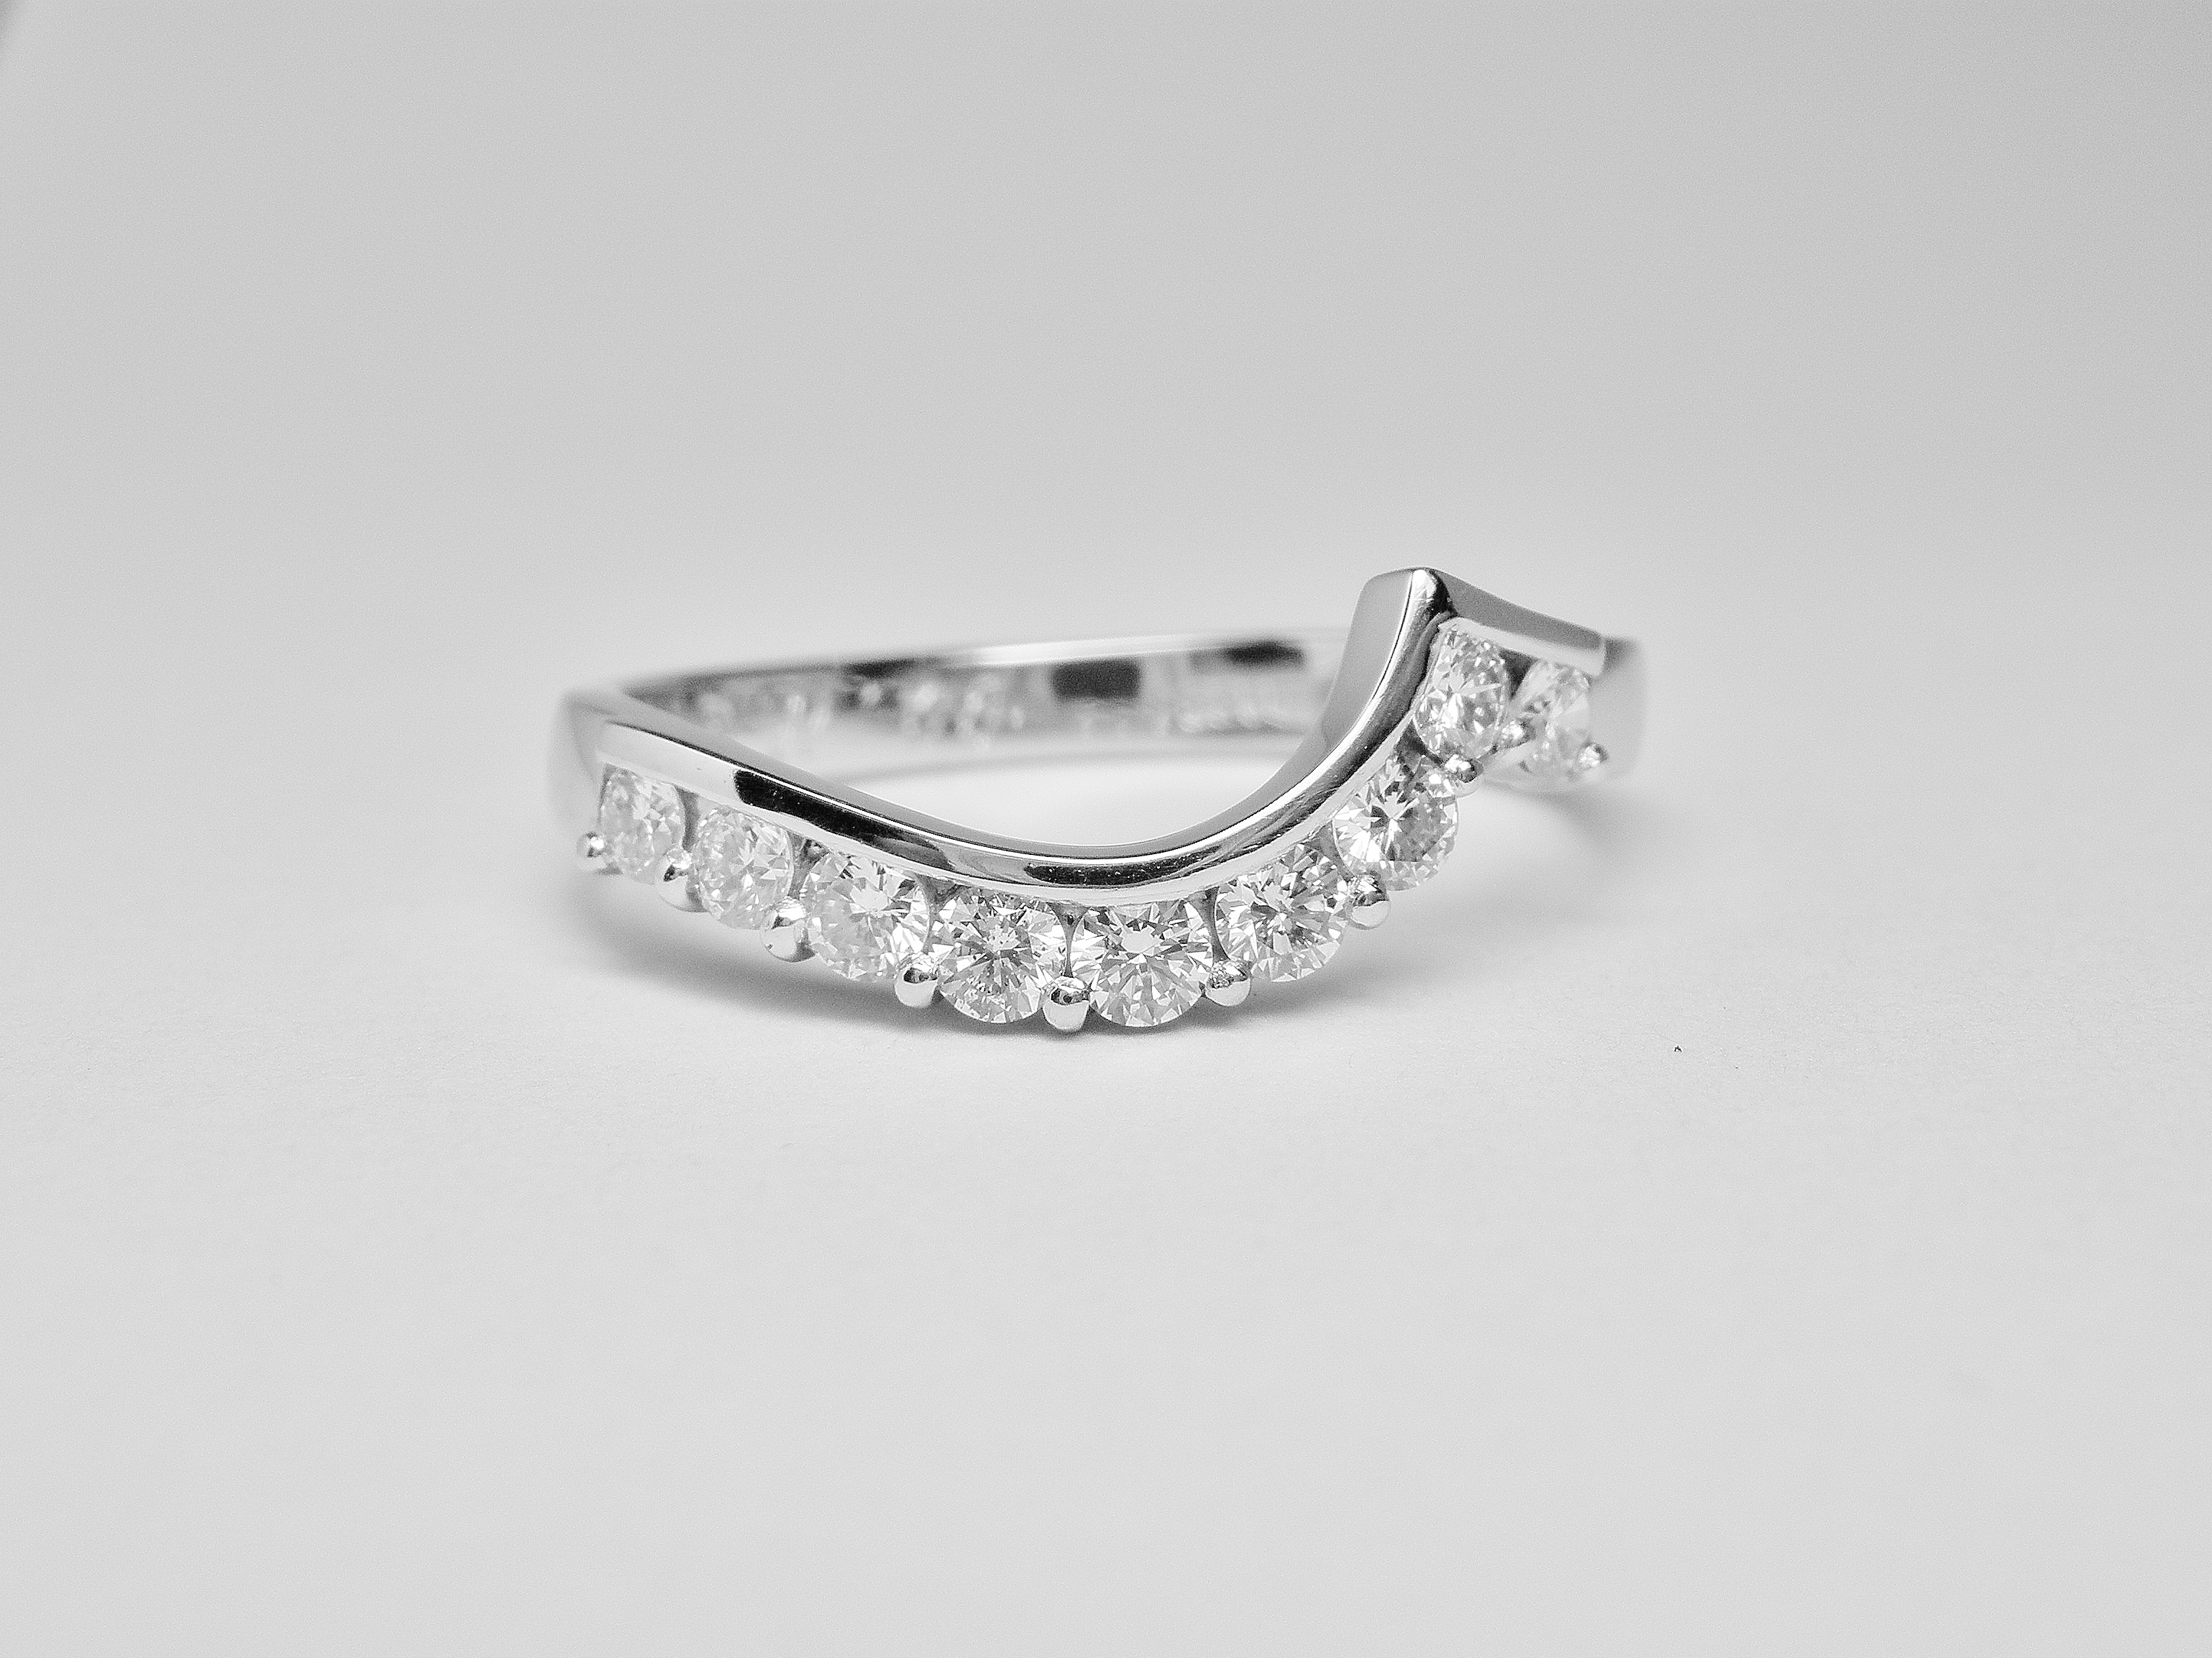 Part channel & wire set diamond wedding ring mounted in platinum & shaped to fit a single stone cross-over diamond engagement ring.